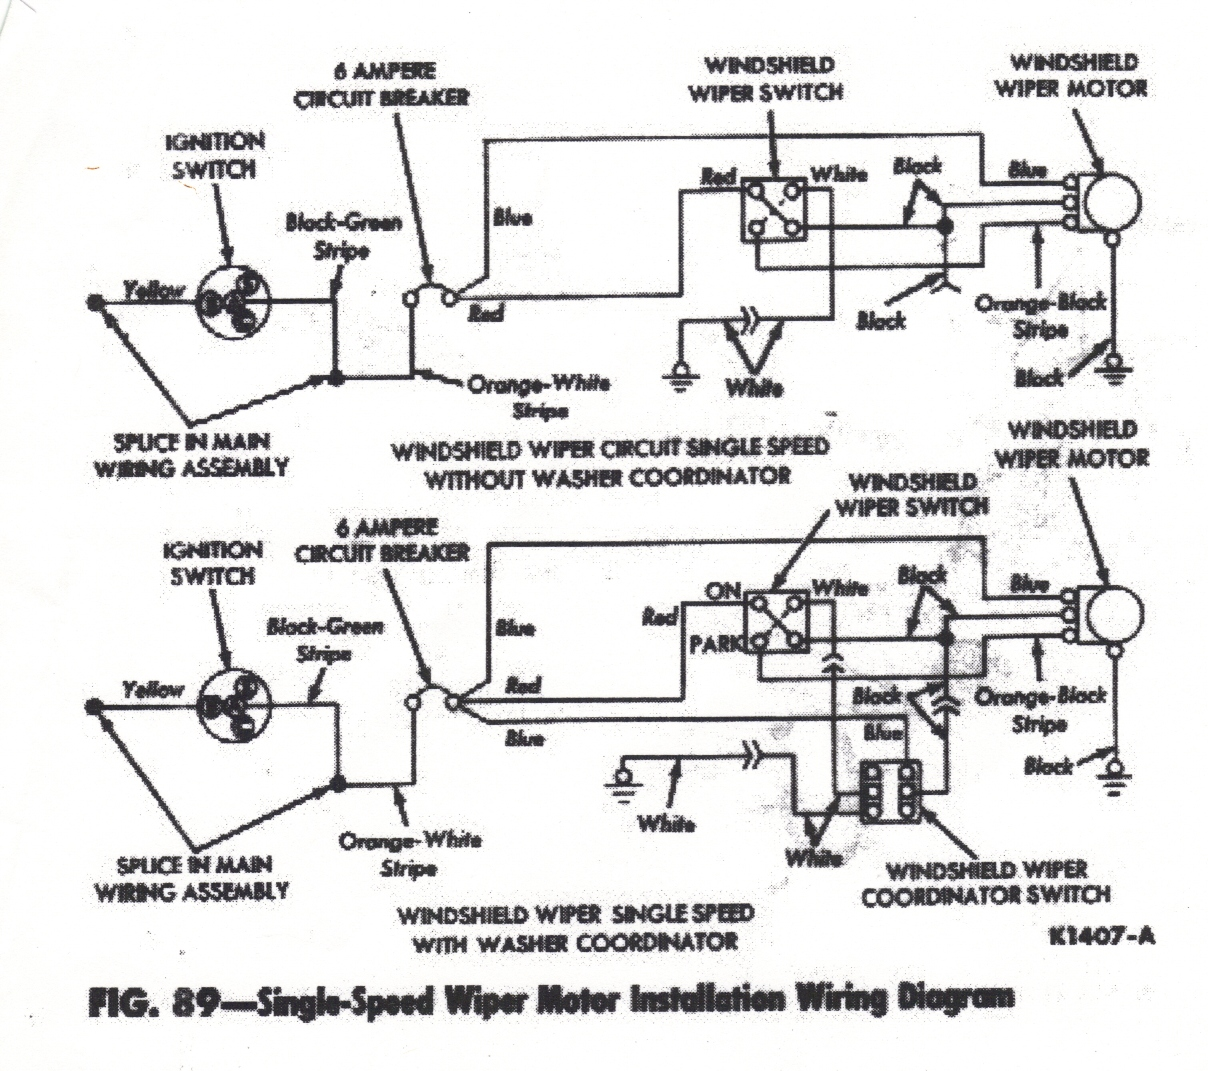 falcon diagrams ford relay wiring wipers drawing a